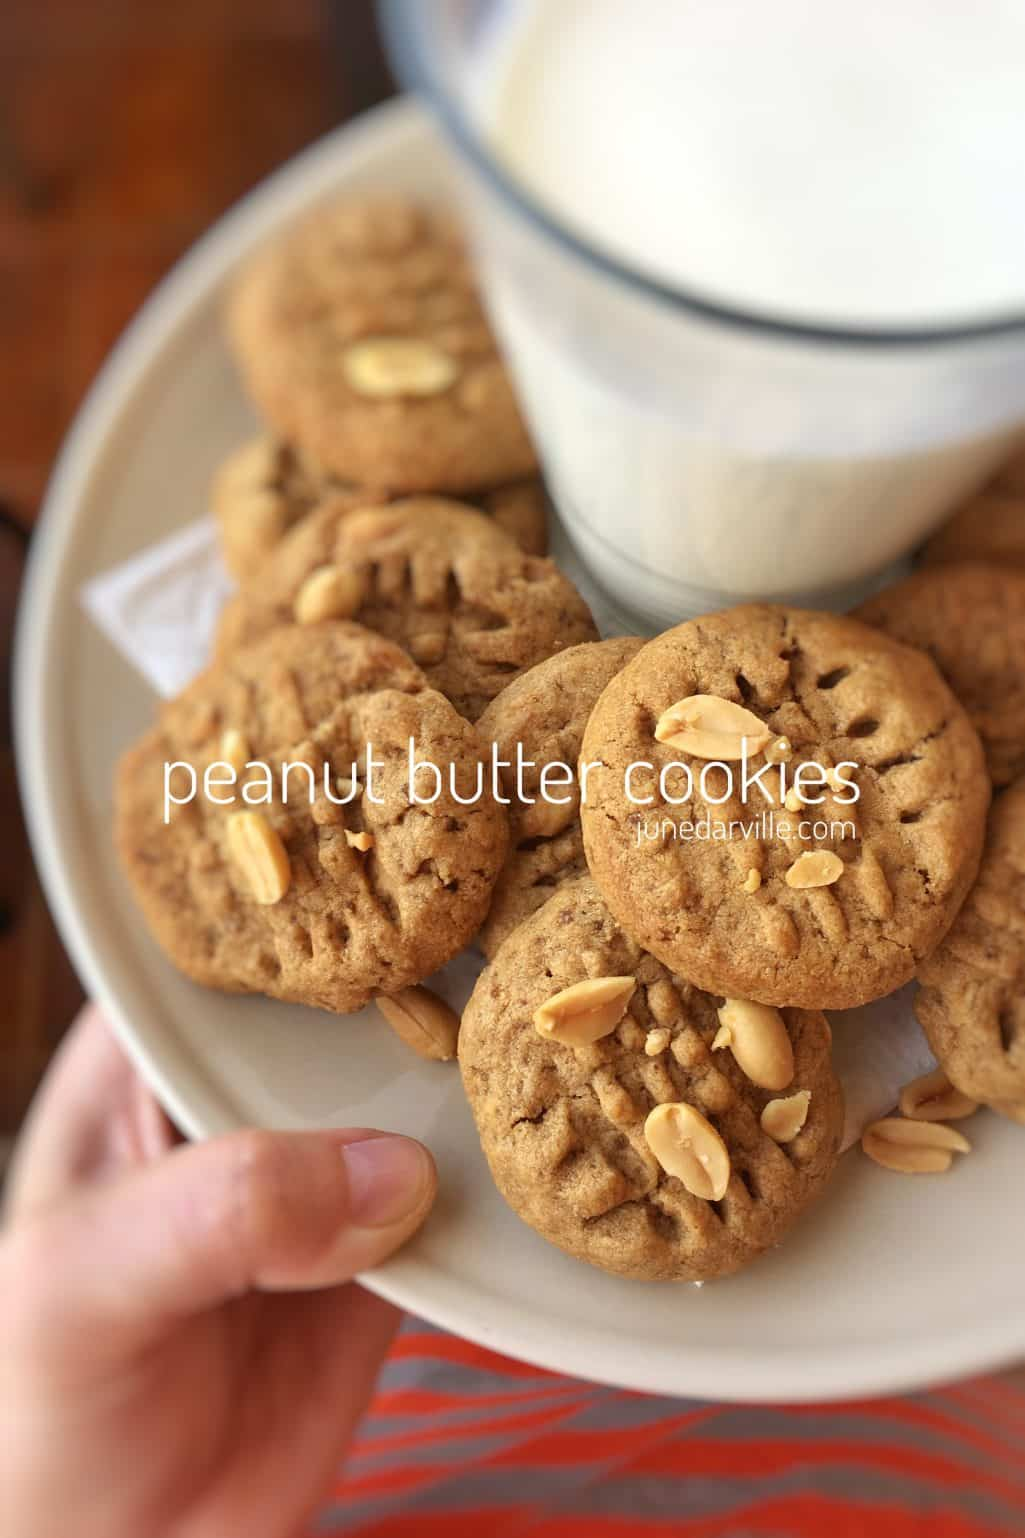 The best easy peanut butter cookies you will ever make! This cookie recipe is a fun thing to do with kids during a rainy weekend...